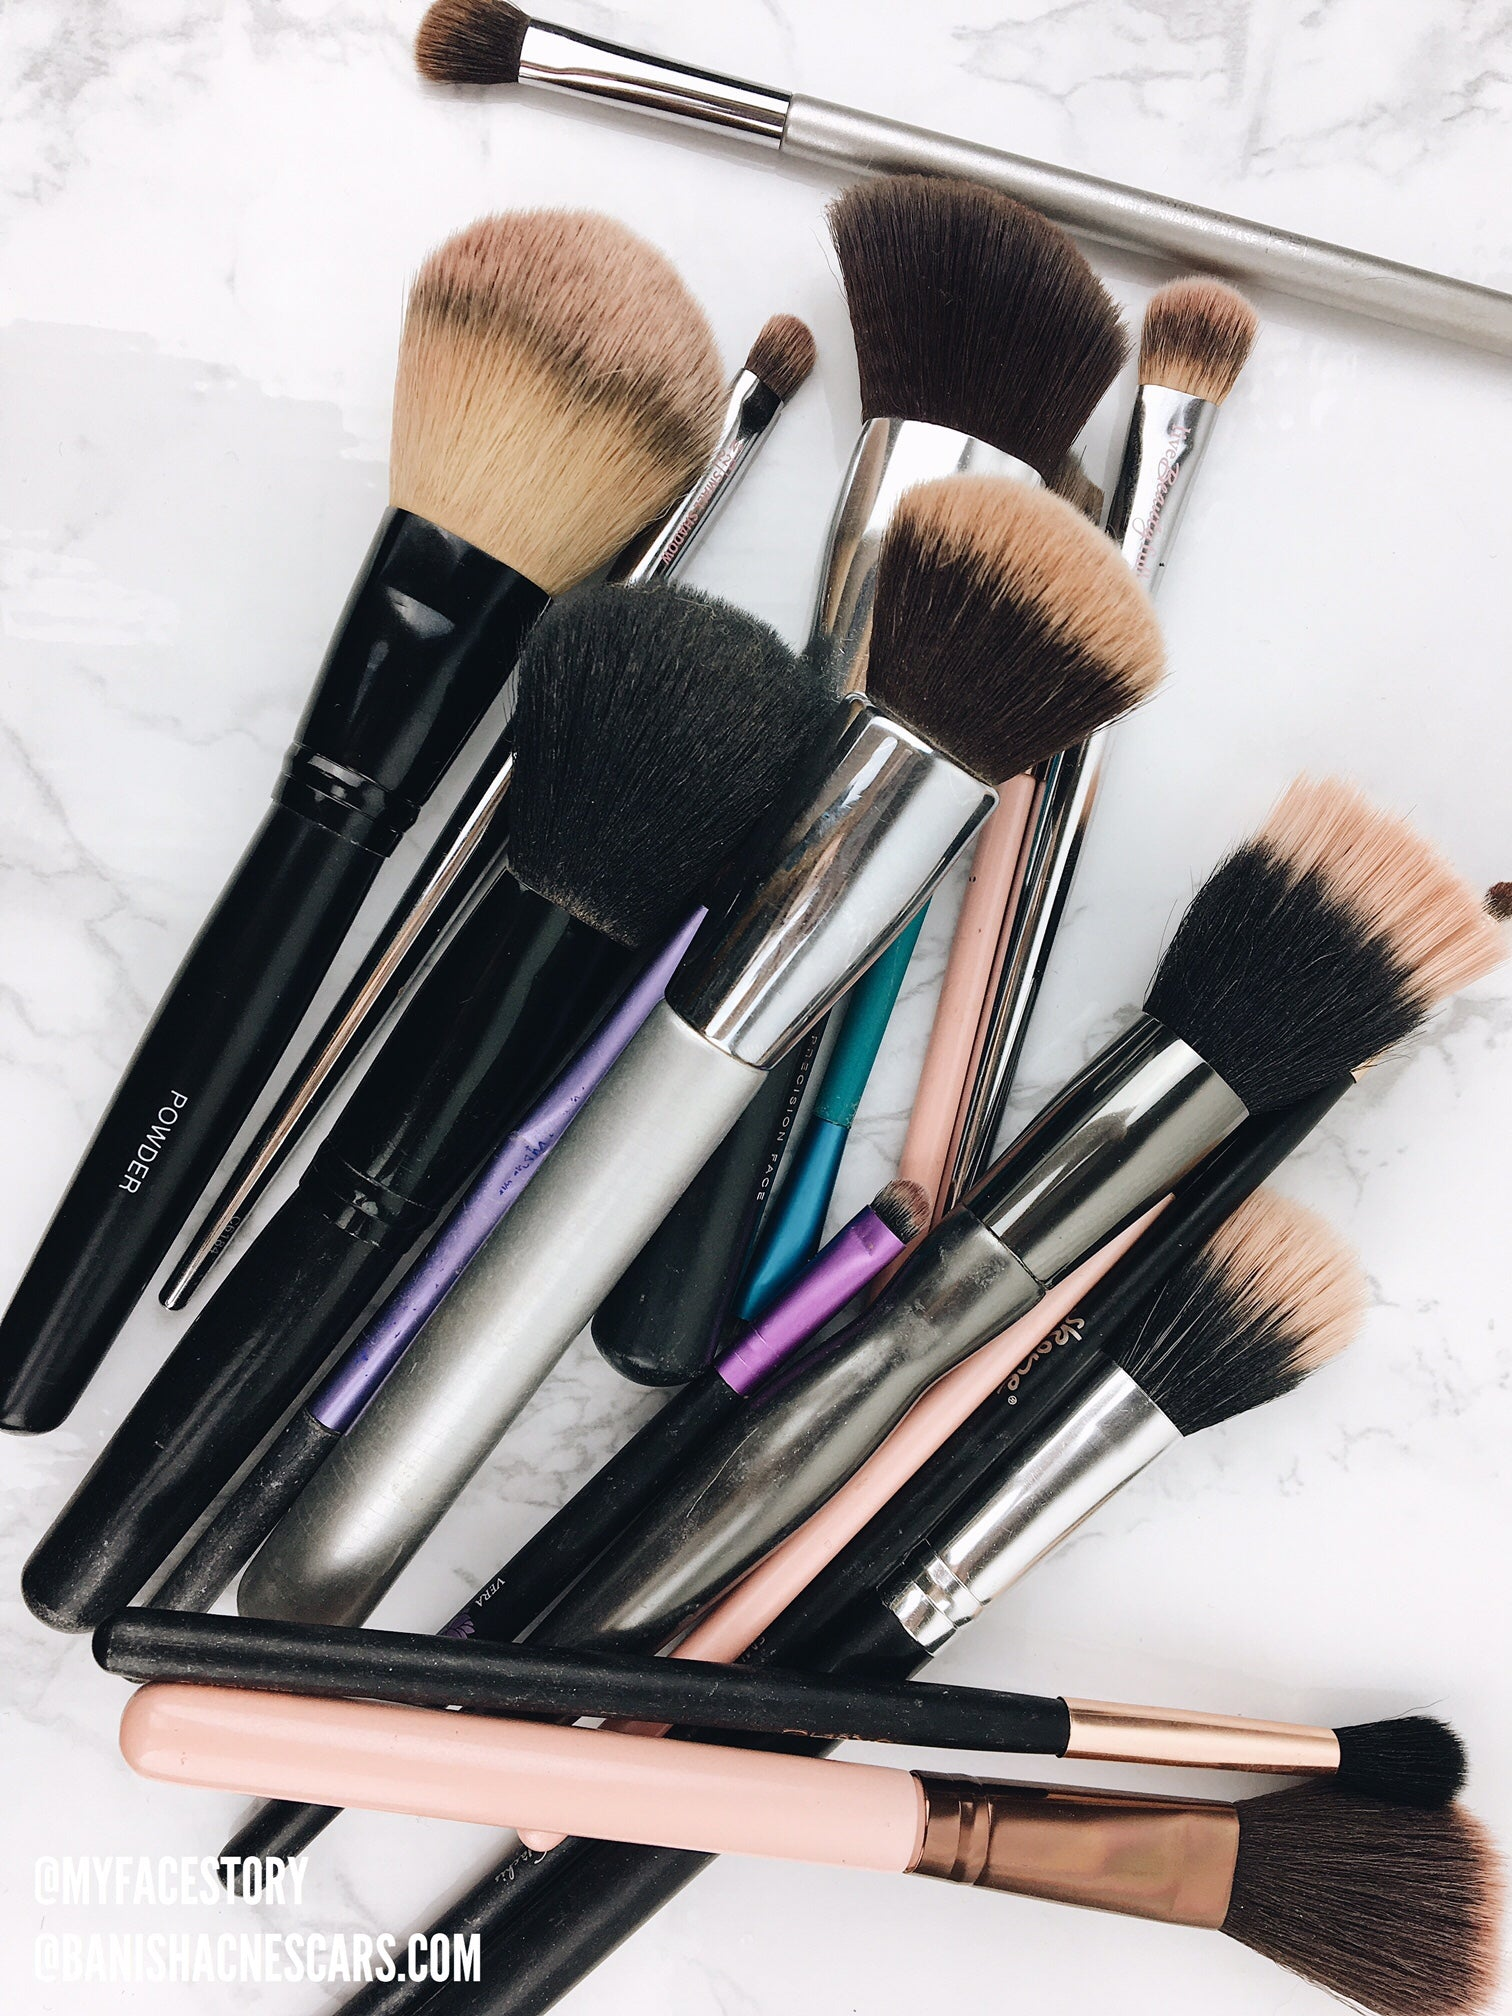 How Often Should You Really Be Washing Your Makeup Brushes?